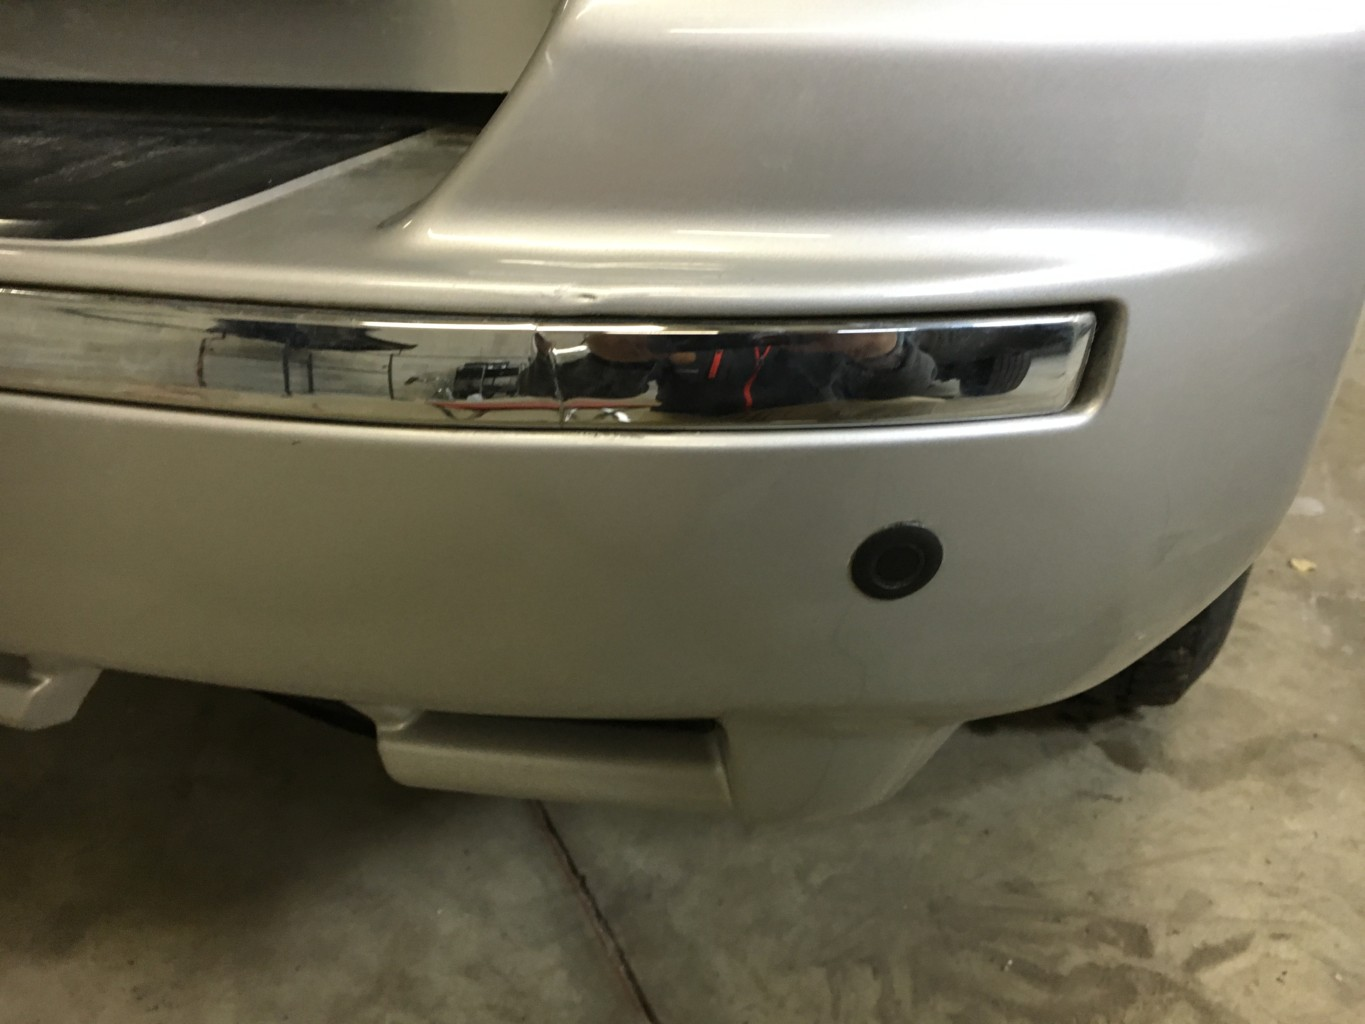 Paintless Dent Repair Grand Rapids, Michigan: 4Runner bumper - after